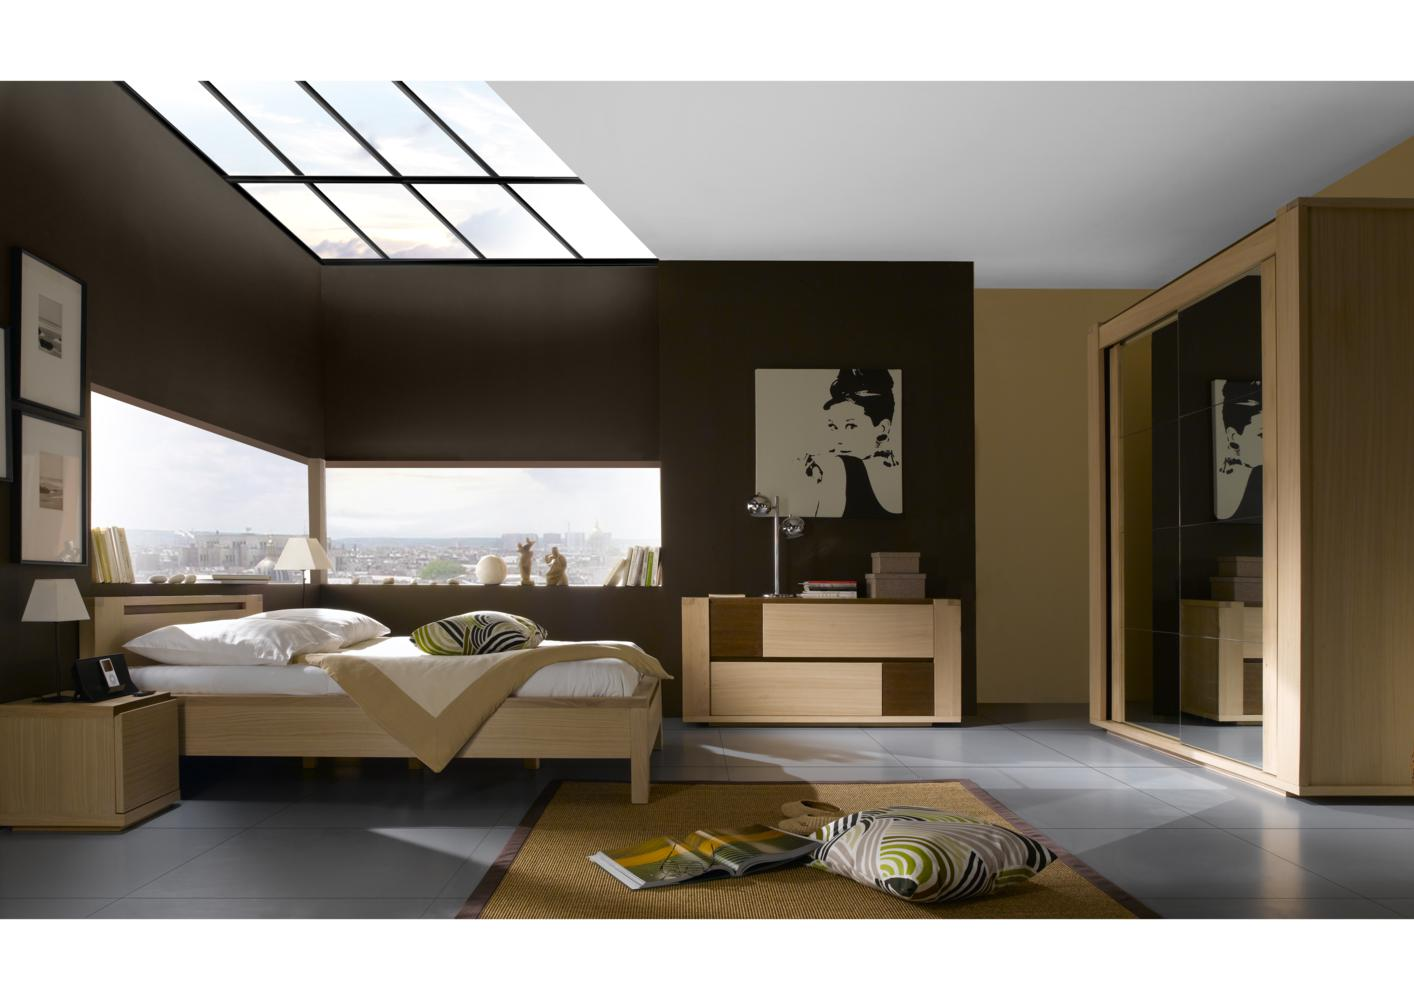 acheter votre lit contemporain couchage en 140 ou 160 cm chez simeuble. Black Bedroom Furniture Sets. Home Design Ideas